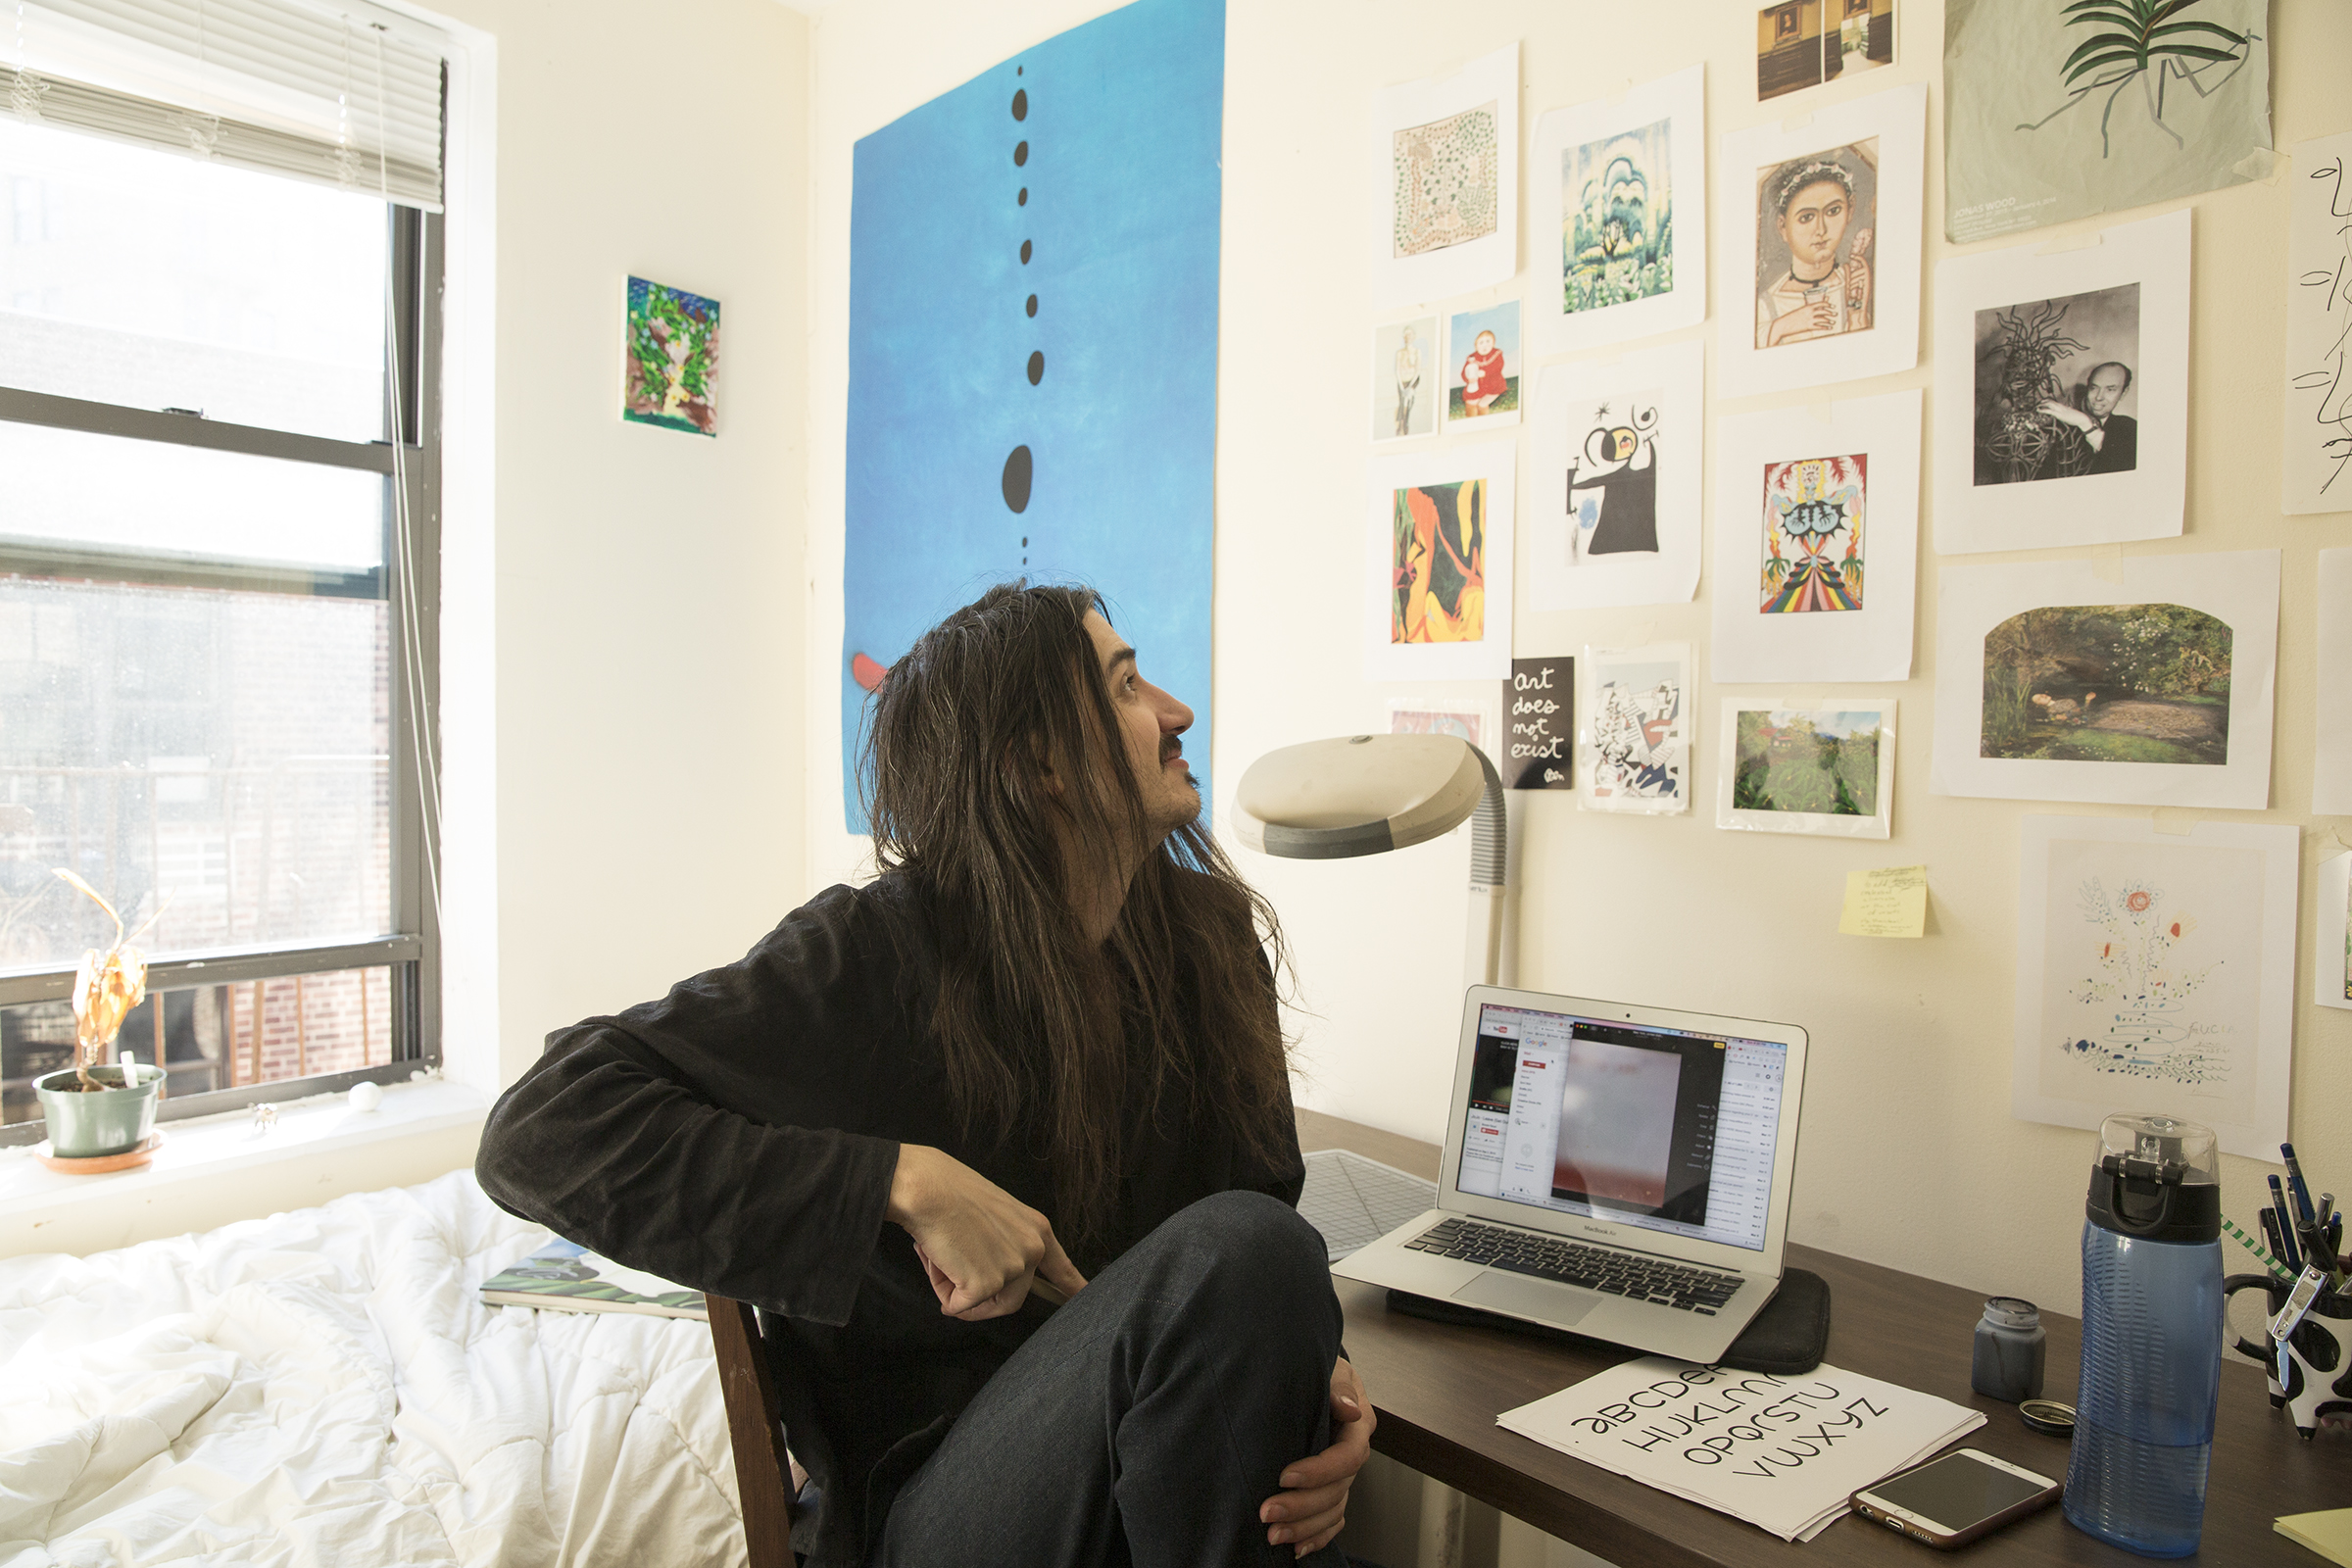 "Aaron sits in their room at home in the West Village where they share a small apartment with a roommate. The wall is covered in artworks and ephemera that inspire them or relate to a project they're working on. Note the Joan Miró ""Blue"" poster on the wall, the same painting they found on a book in The Strand."